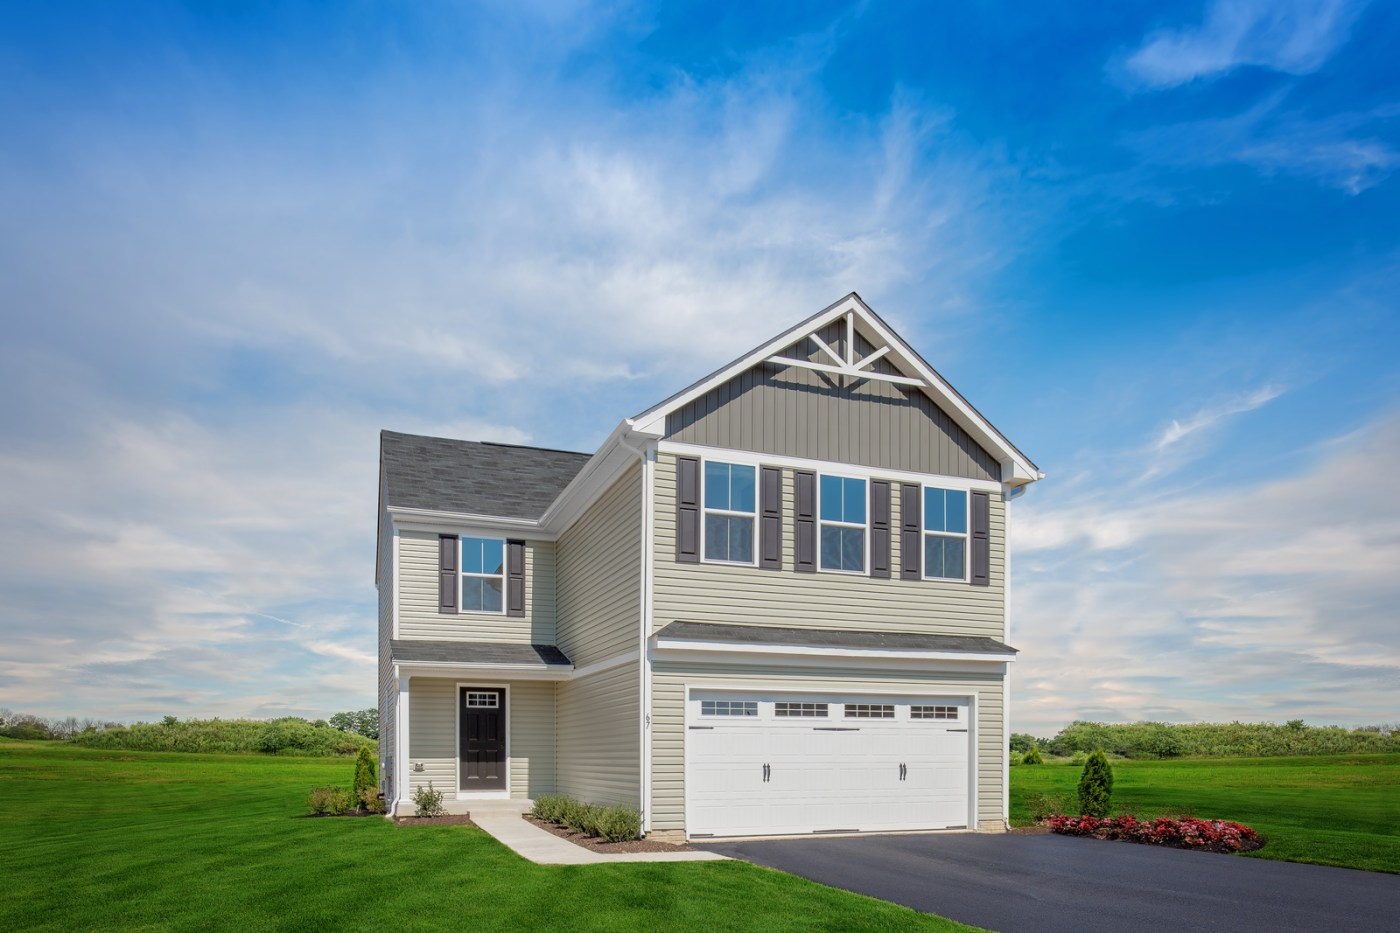 Introducing new two-story single-family homes from the $270s with open floorplans 2-car garages, just a short jog or bike ride to Marquis shopping! Click here to join the Priority List.